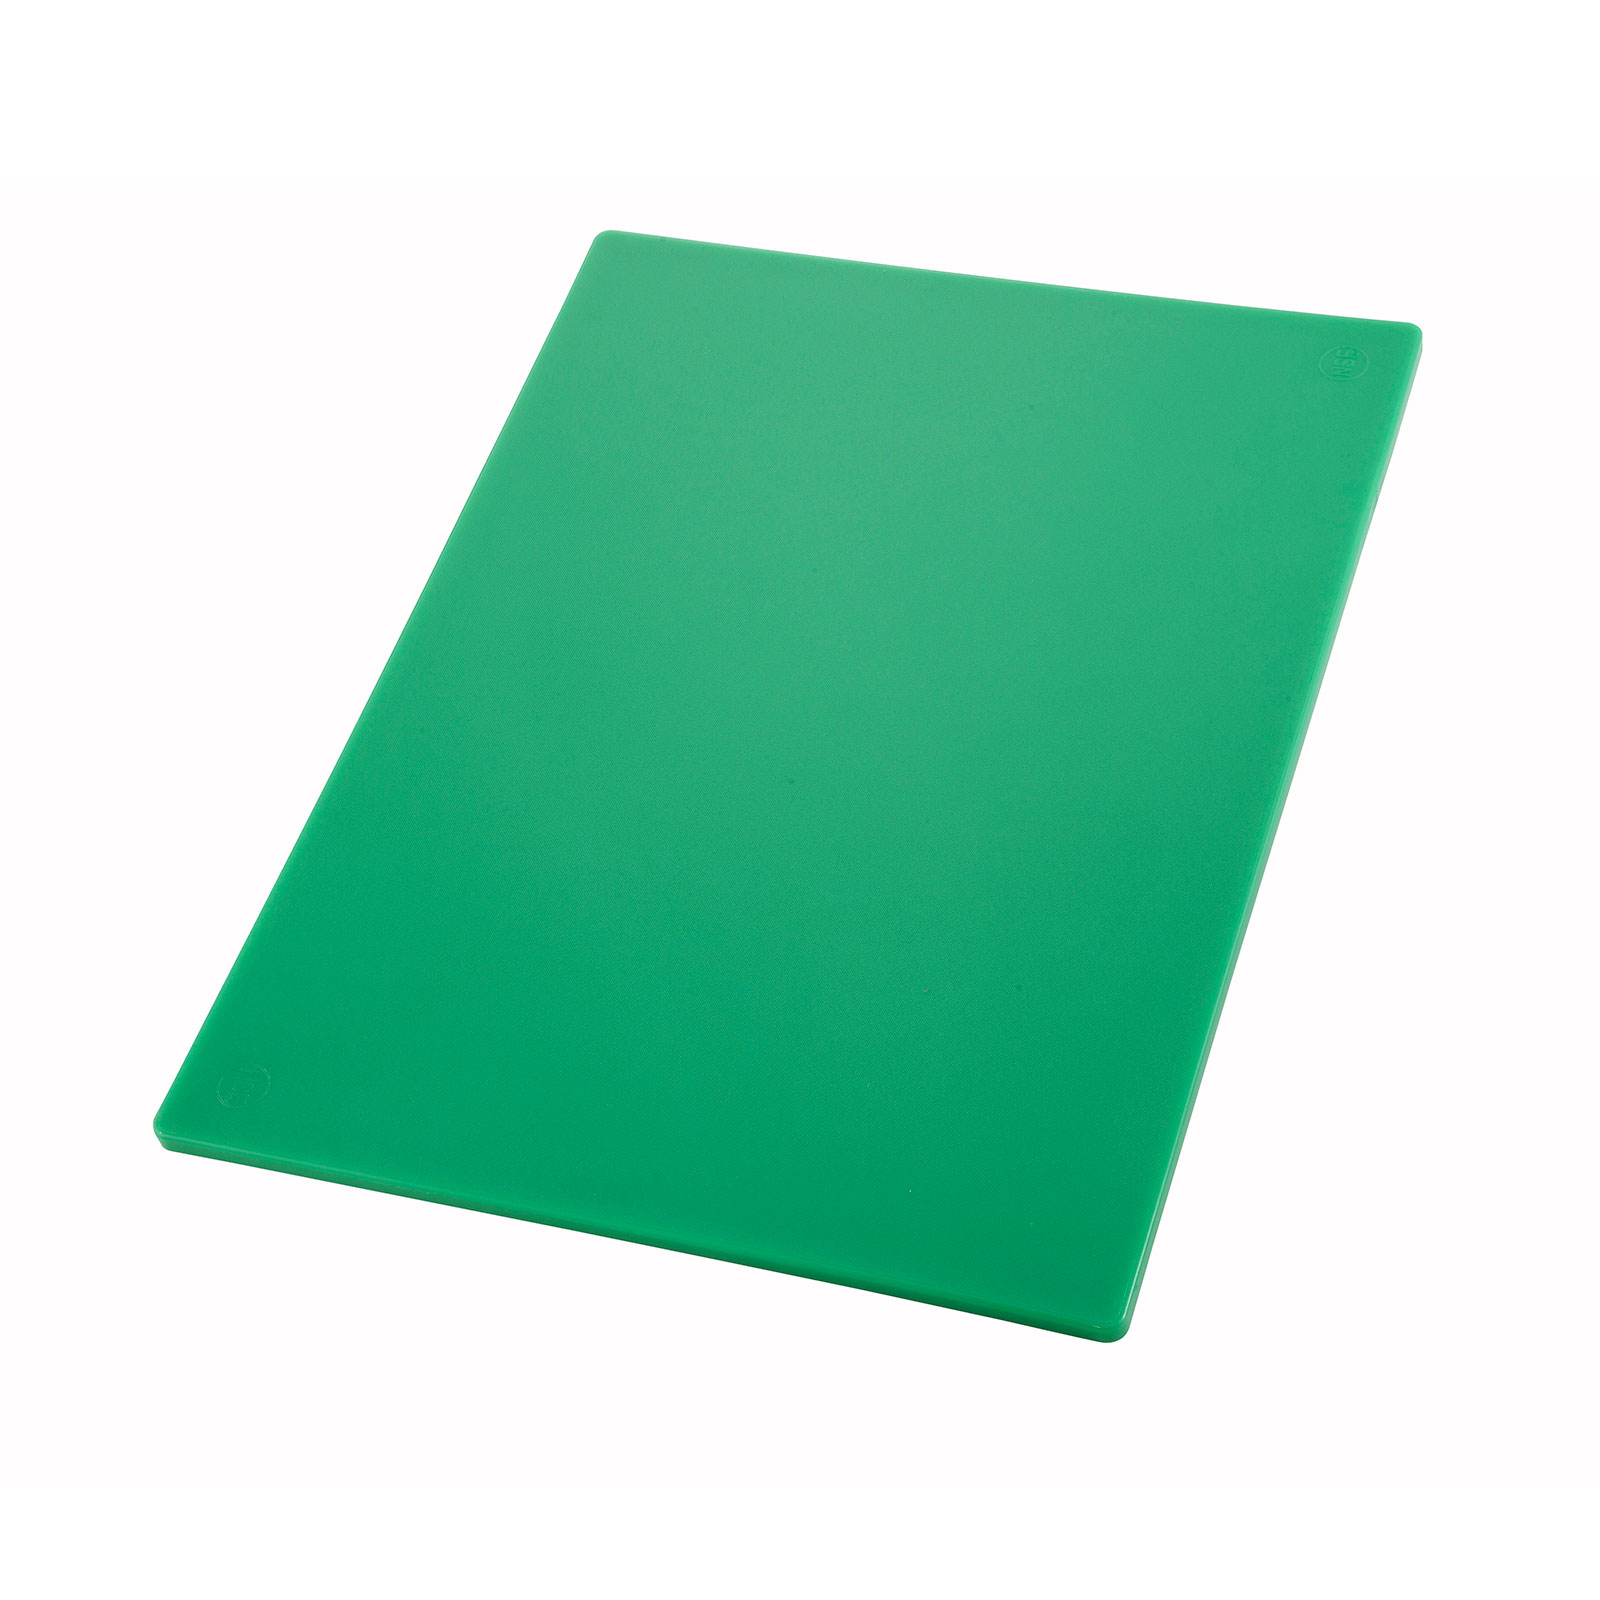 1700-32 Winco CBGR-1520 cutting board, plastic